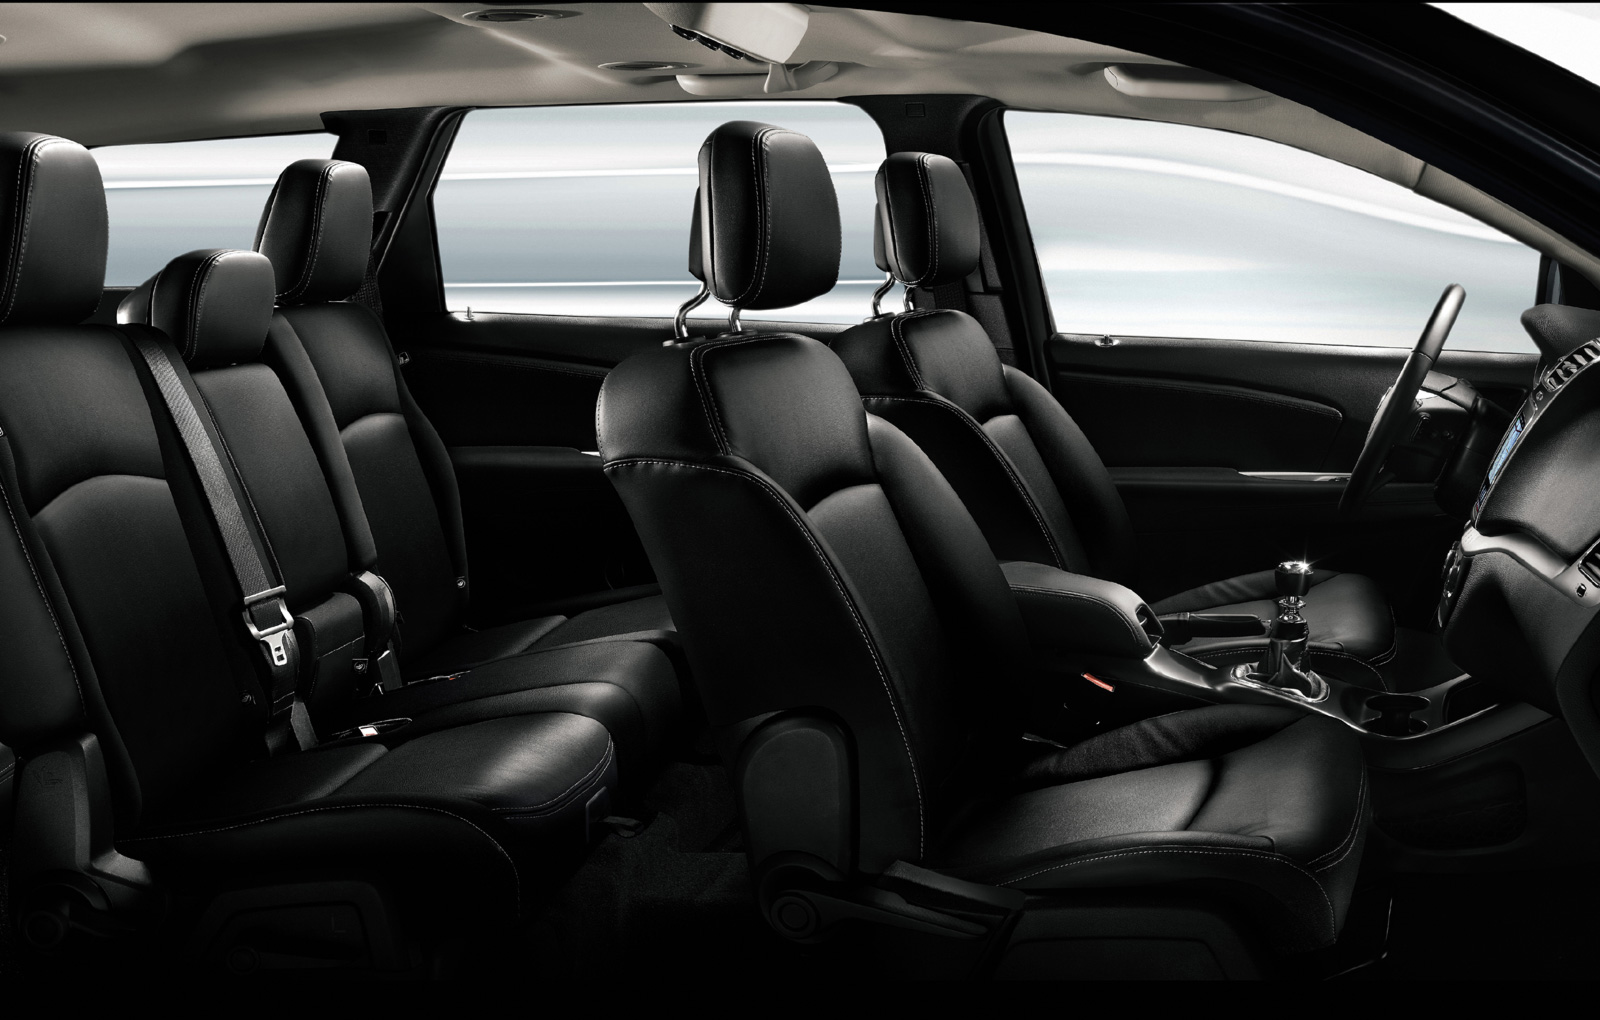 Click image for larger version  Name:b4426_2011-Fiat-Freemont-interior-1.jpg Views:376 Size:318.9 KB ID:54012